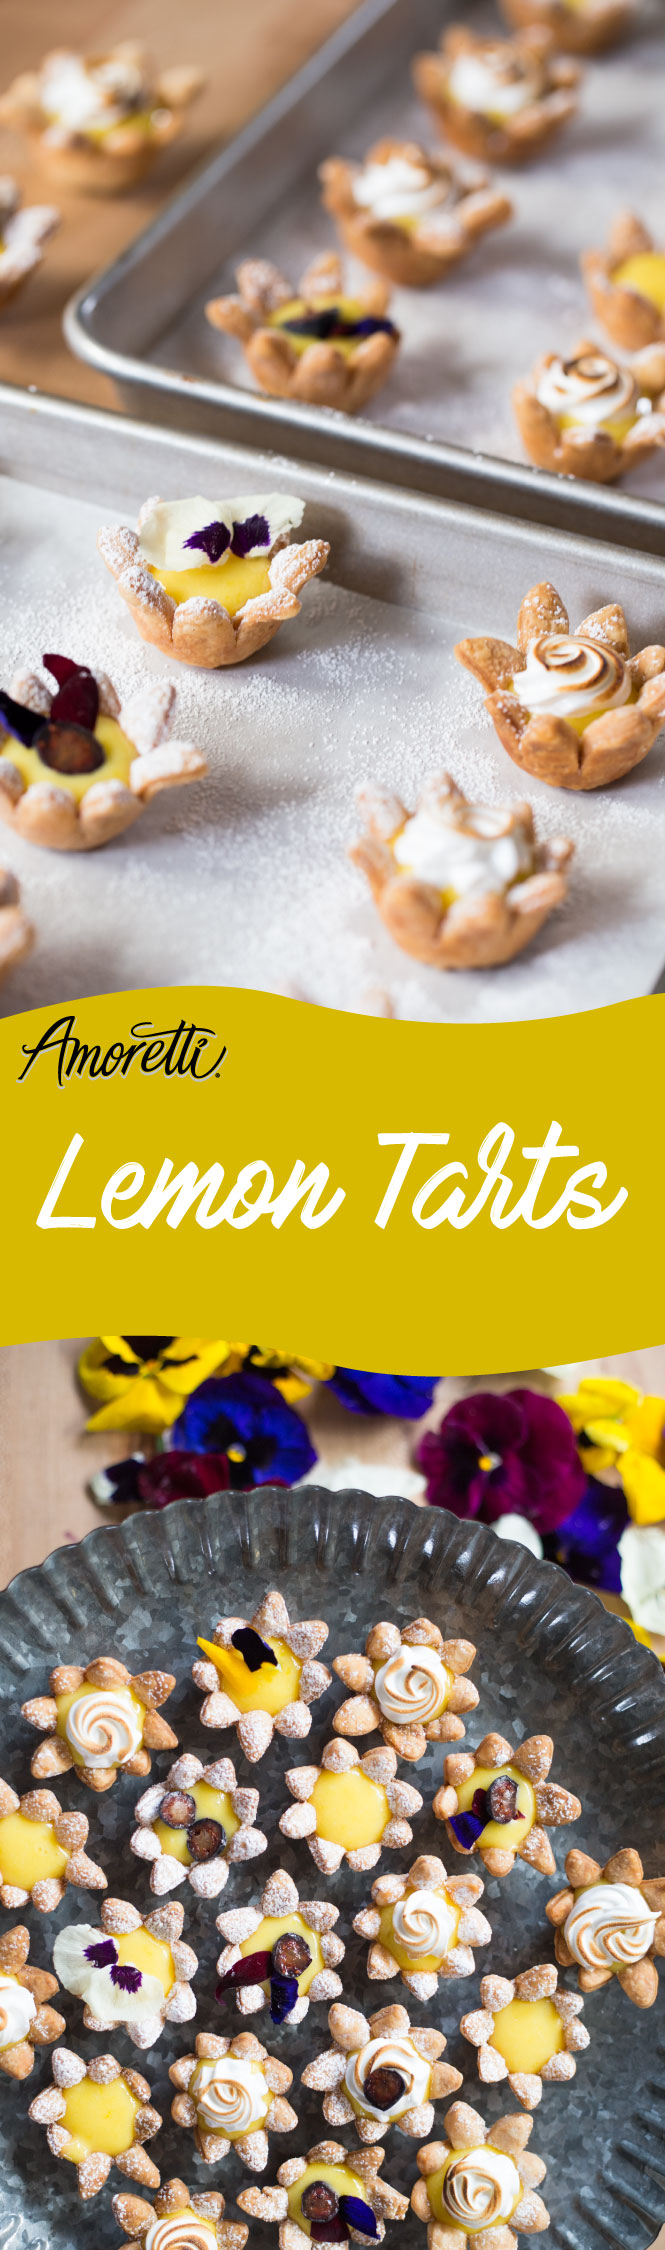 Spring. The weather gets warmer and flowers bloom. You want that perfect treat for your Easter party or for a beautiful spring day, well, this is it: lemon tarts!